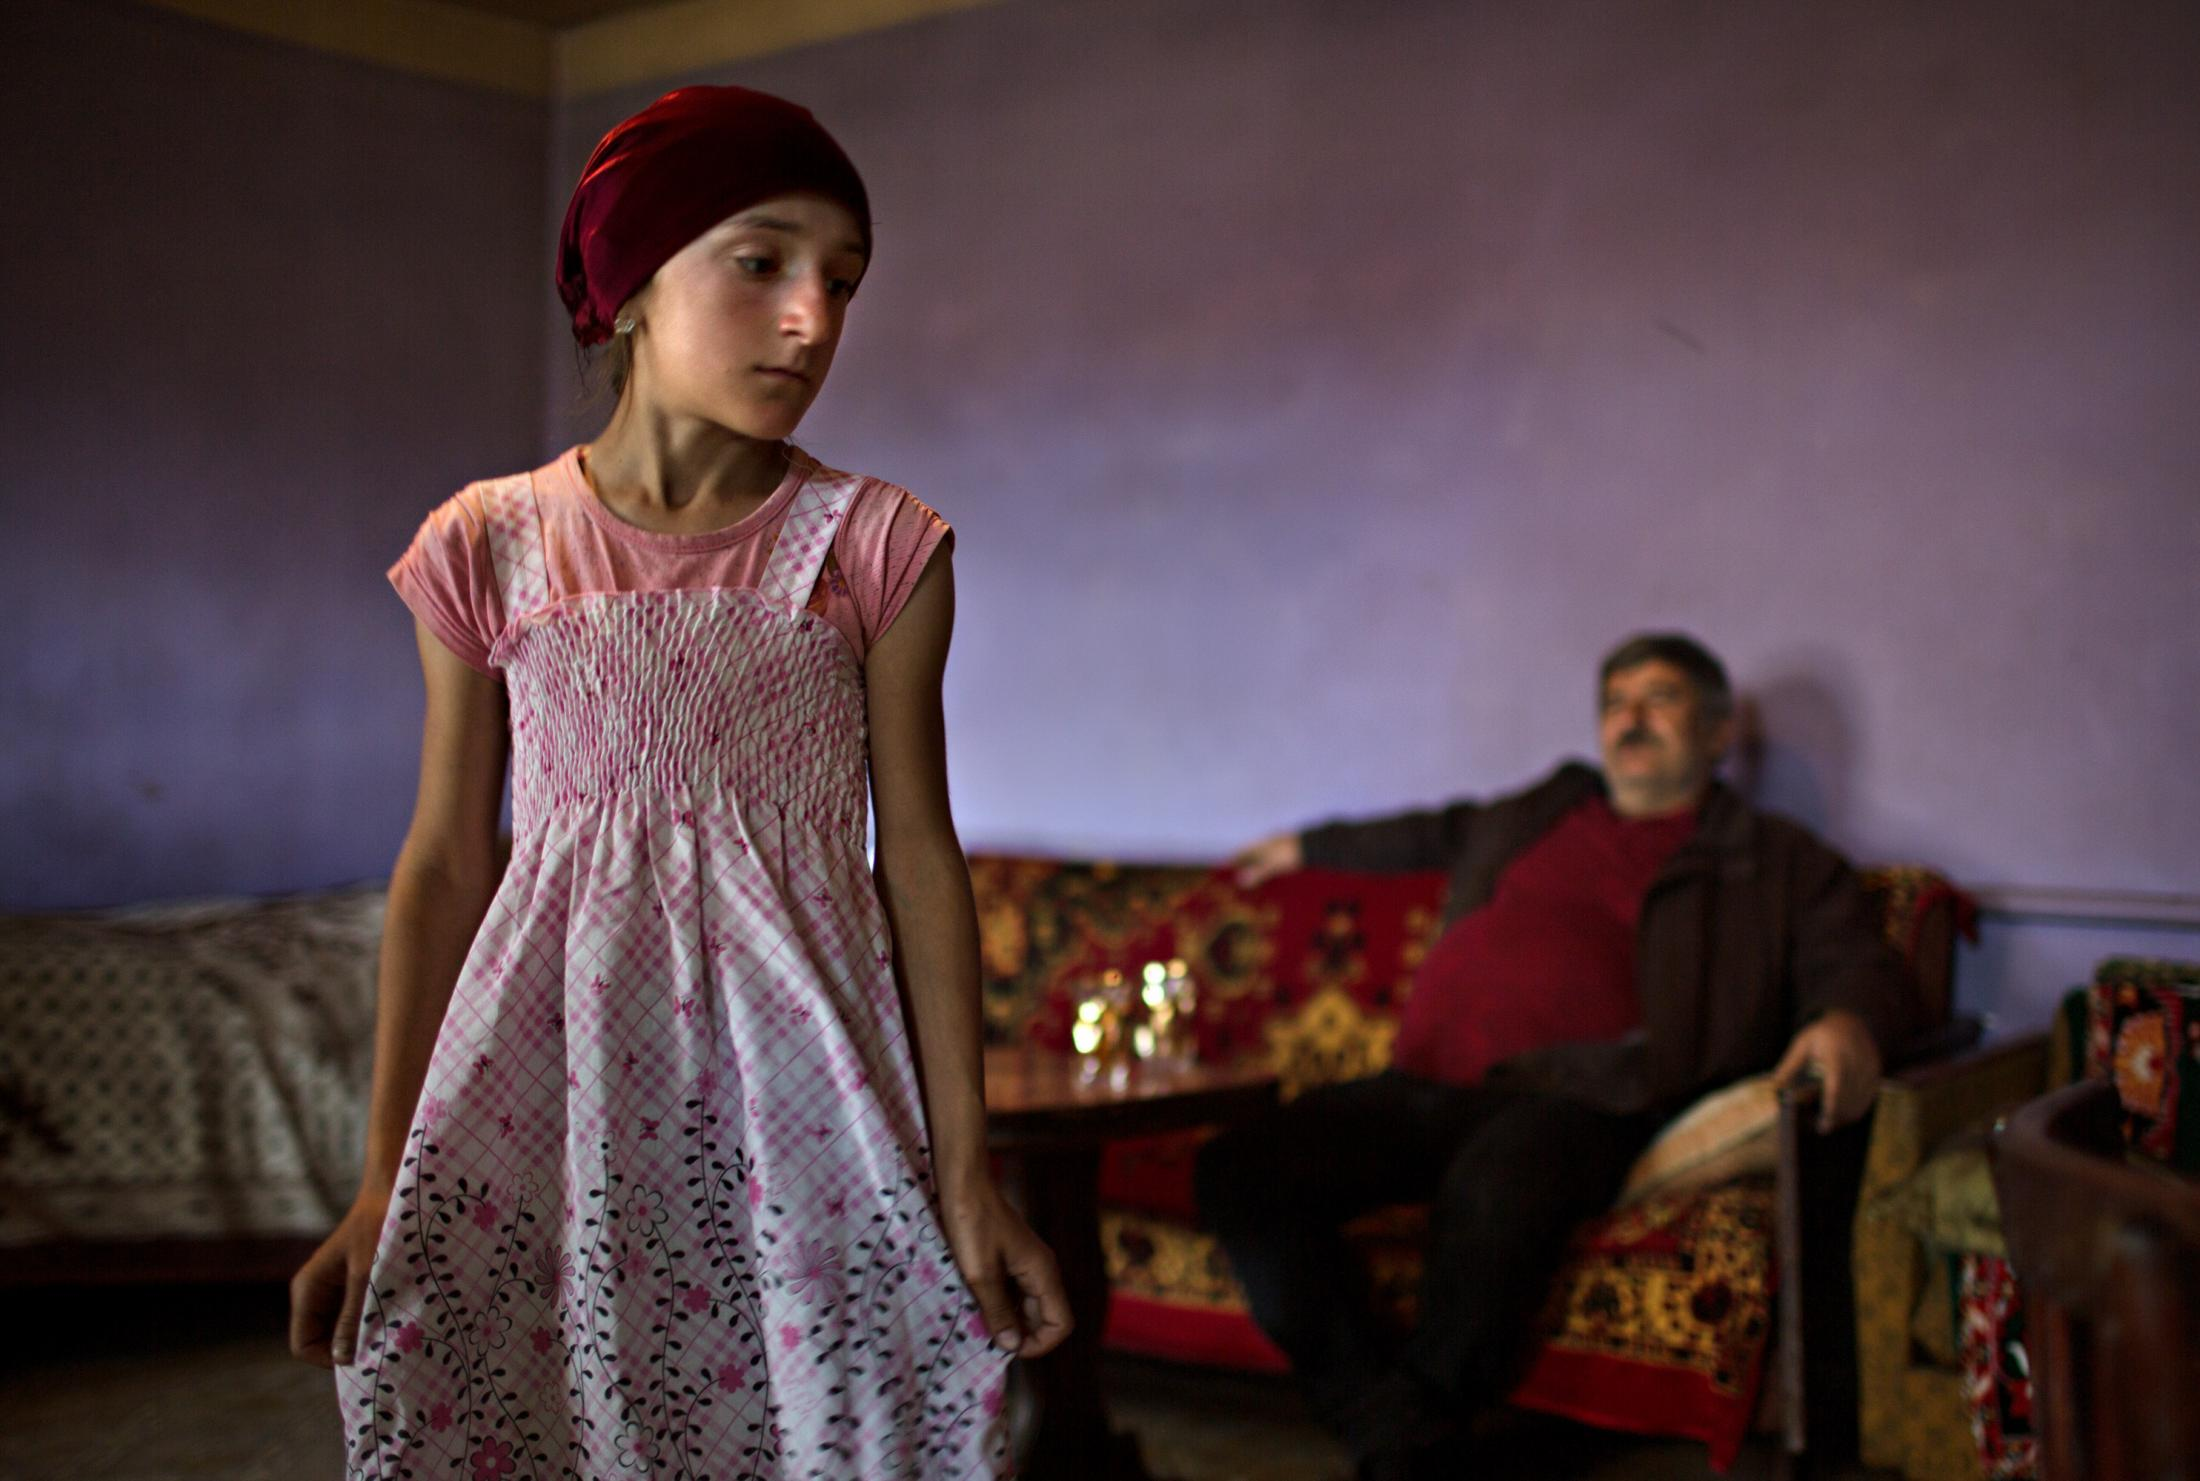 A young Muslim girl shows off her dress under the watchful eyes of her uncle.